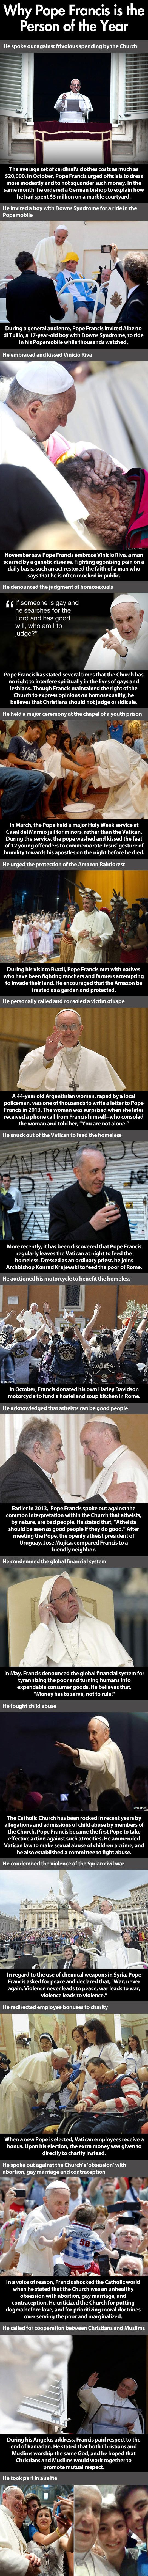 Here are some amazing reasons why Pope Francis was named person of the year by TIME magazine. That's what happens when you choose a Jesuit! :)